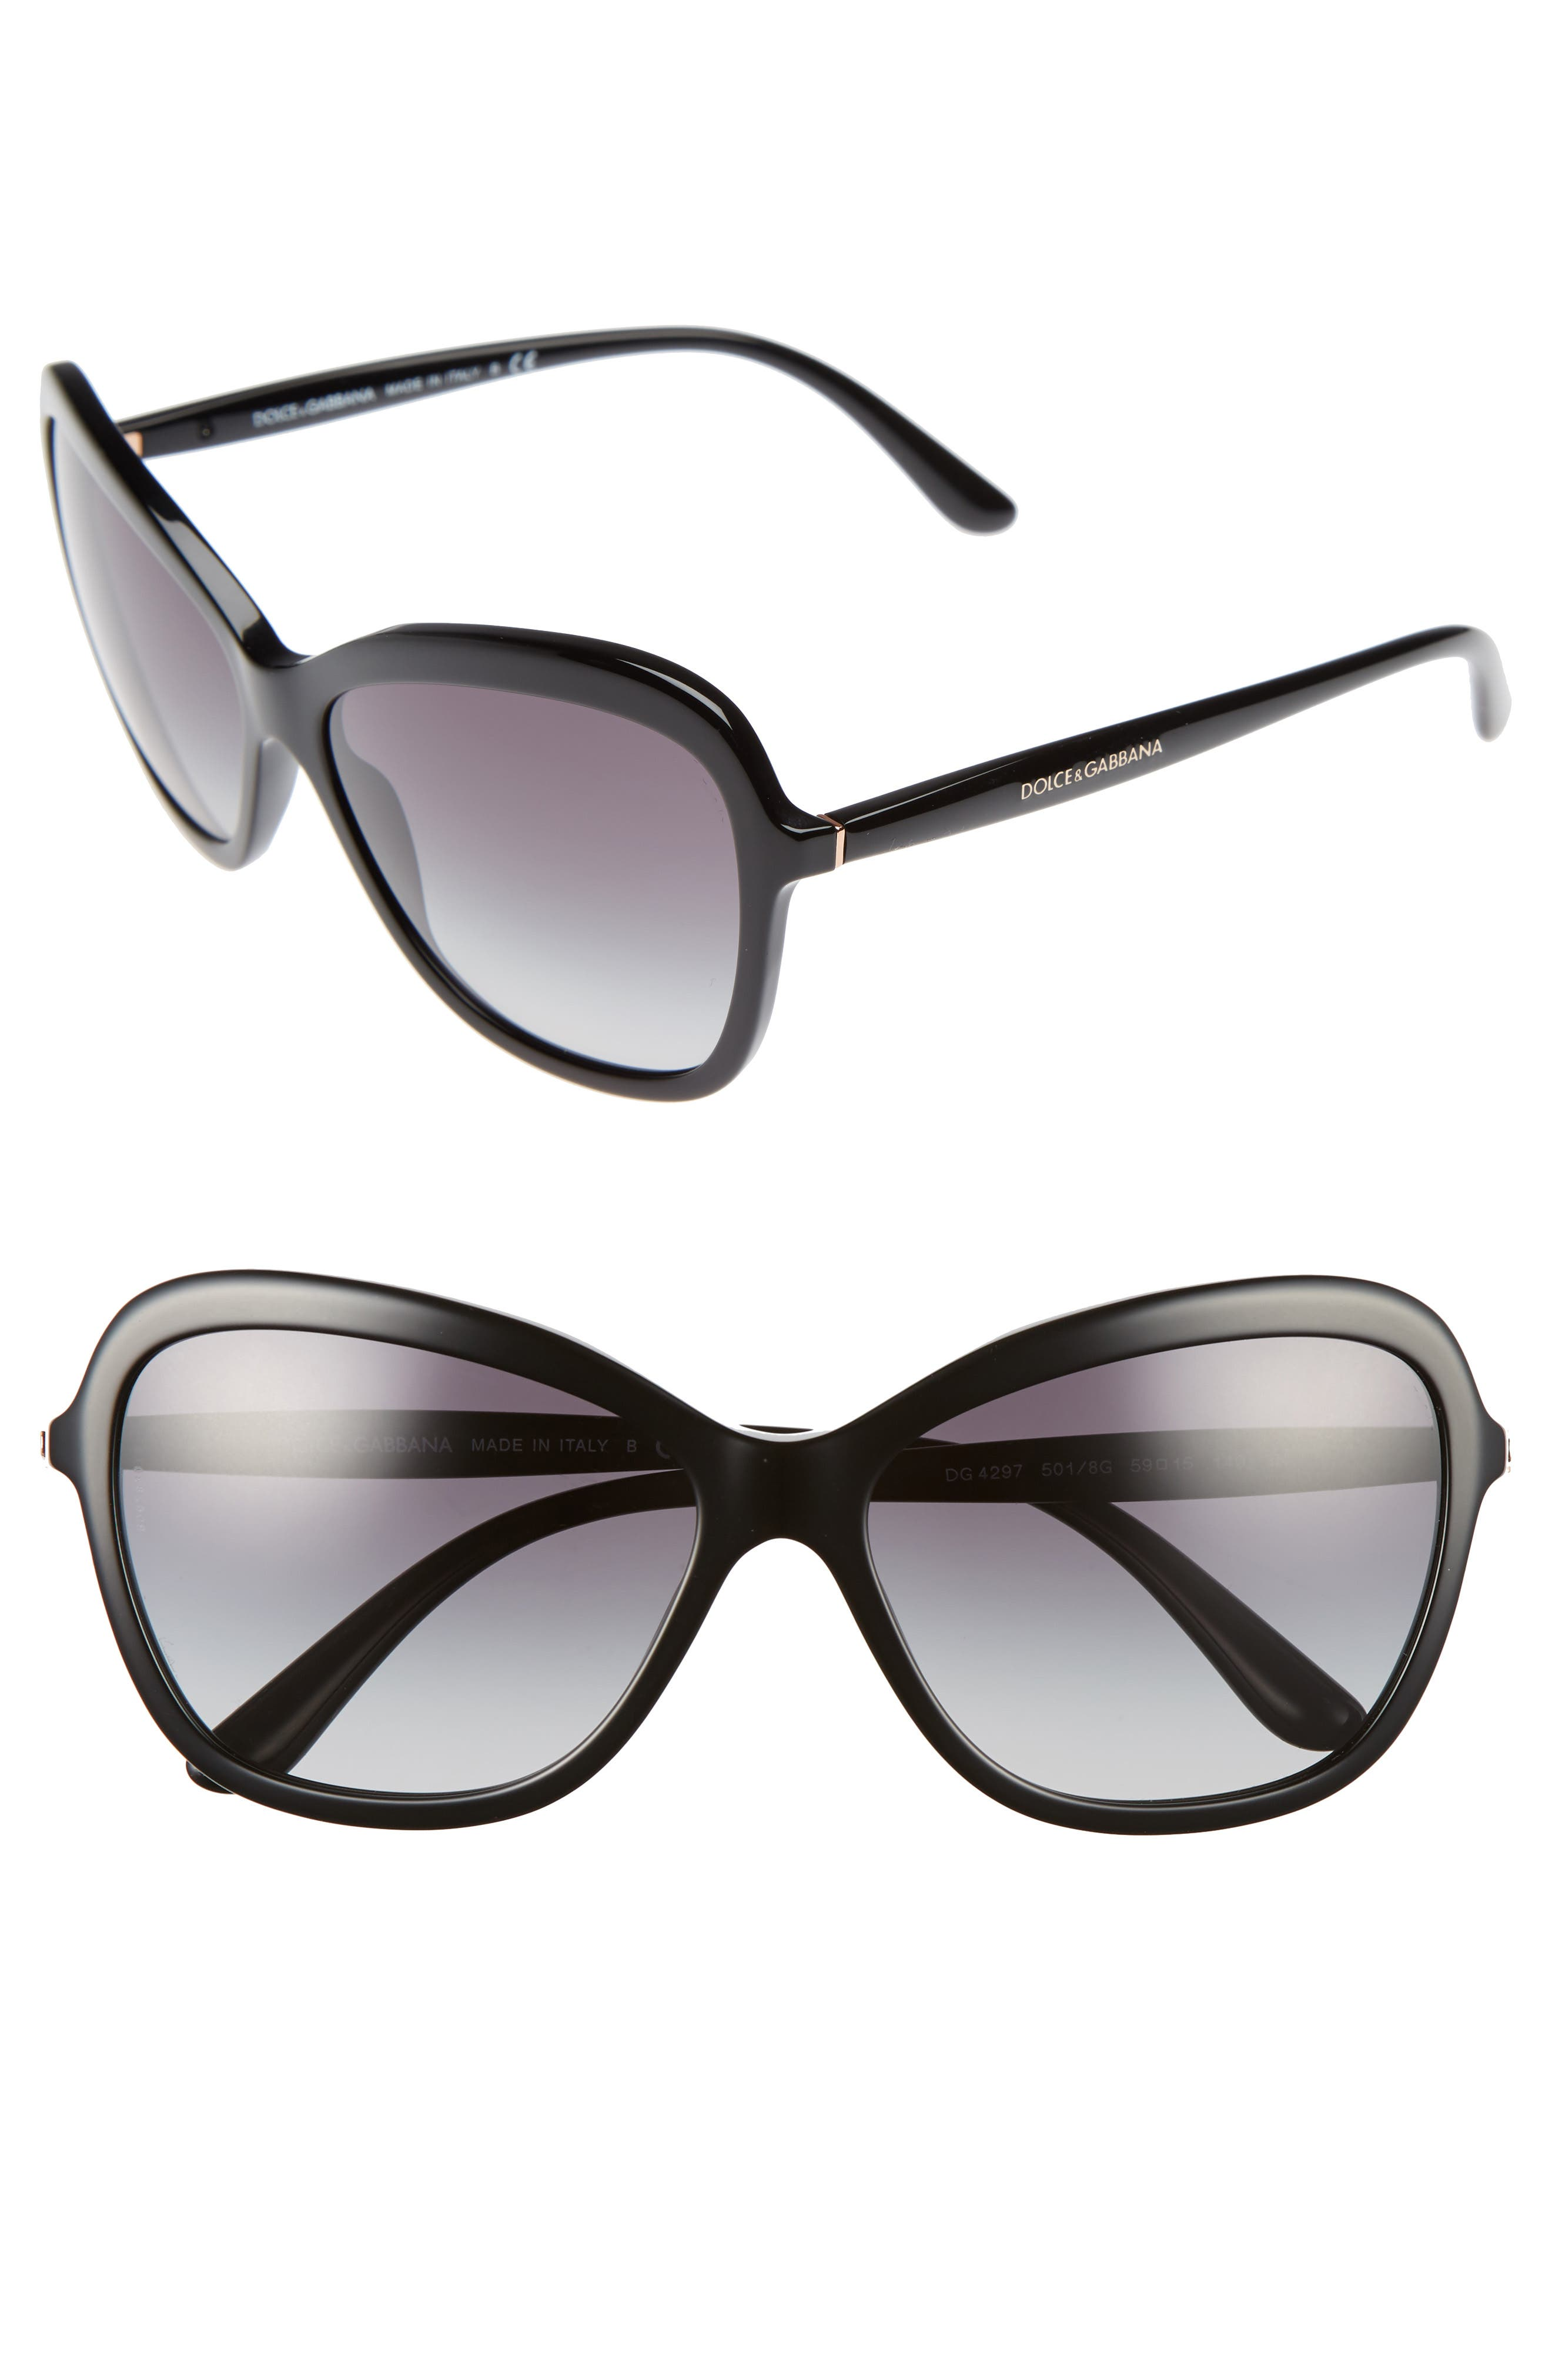 Alternate Image 1 Selected - Dolce&Gabbana 59mm Gradient Butterfly Sunglasses